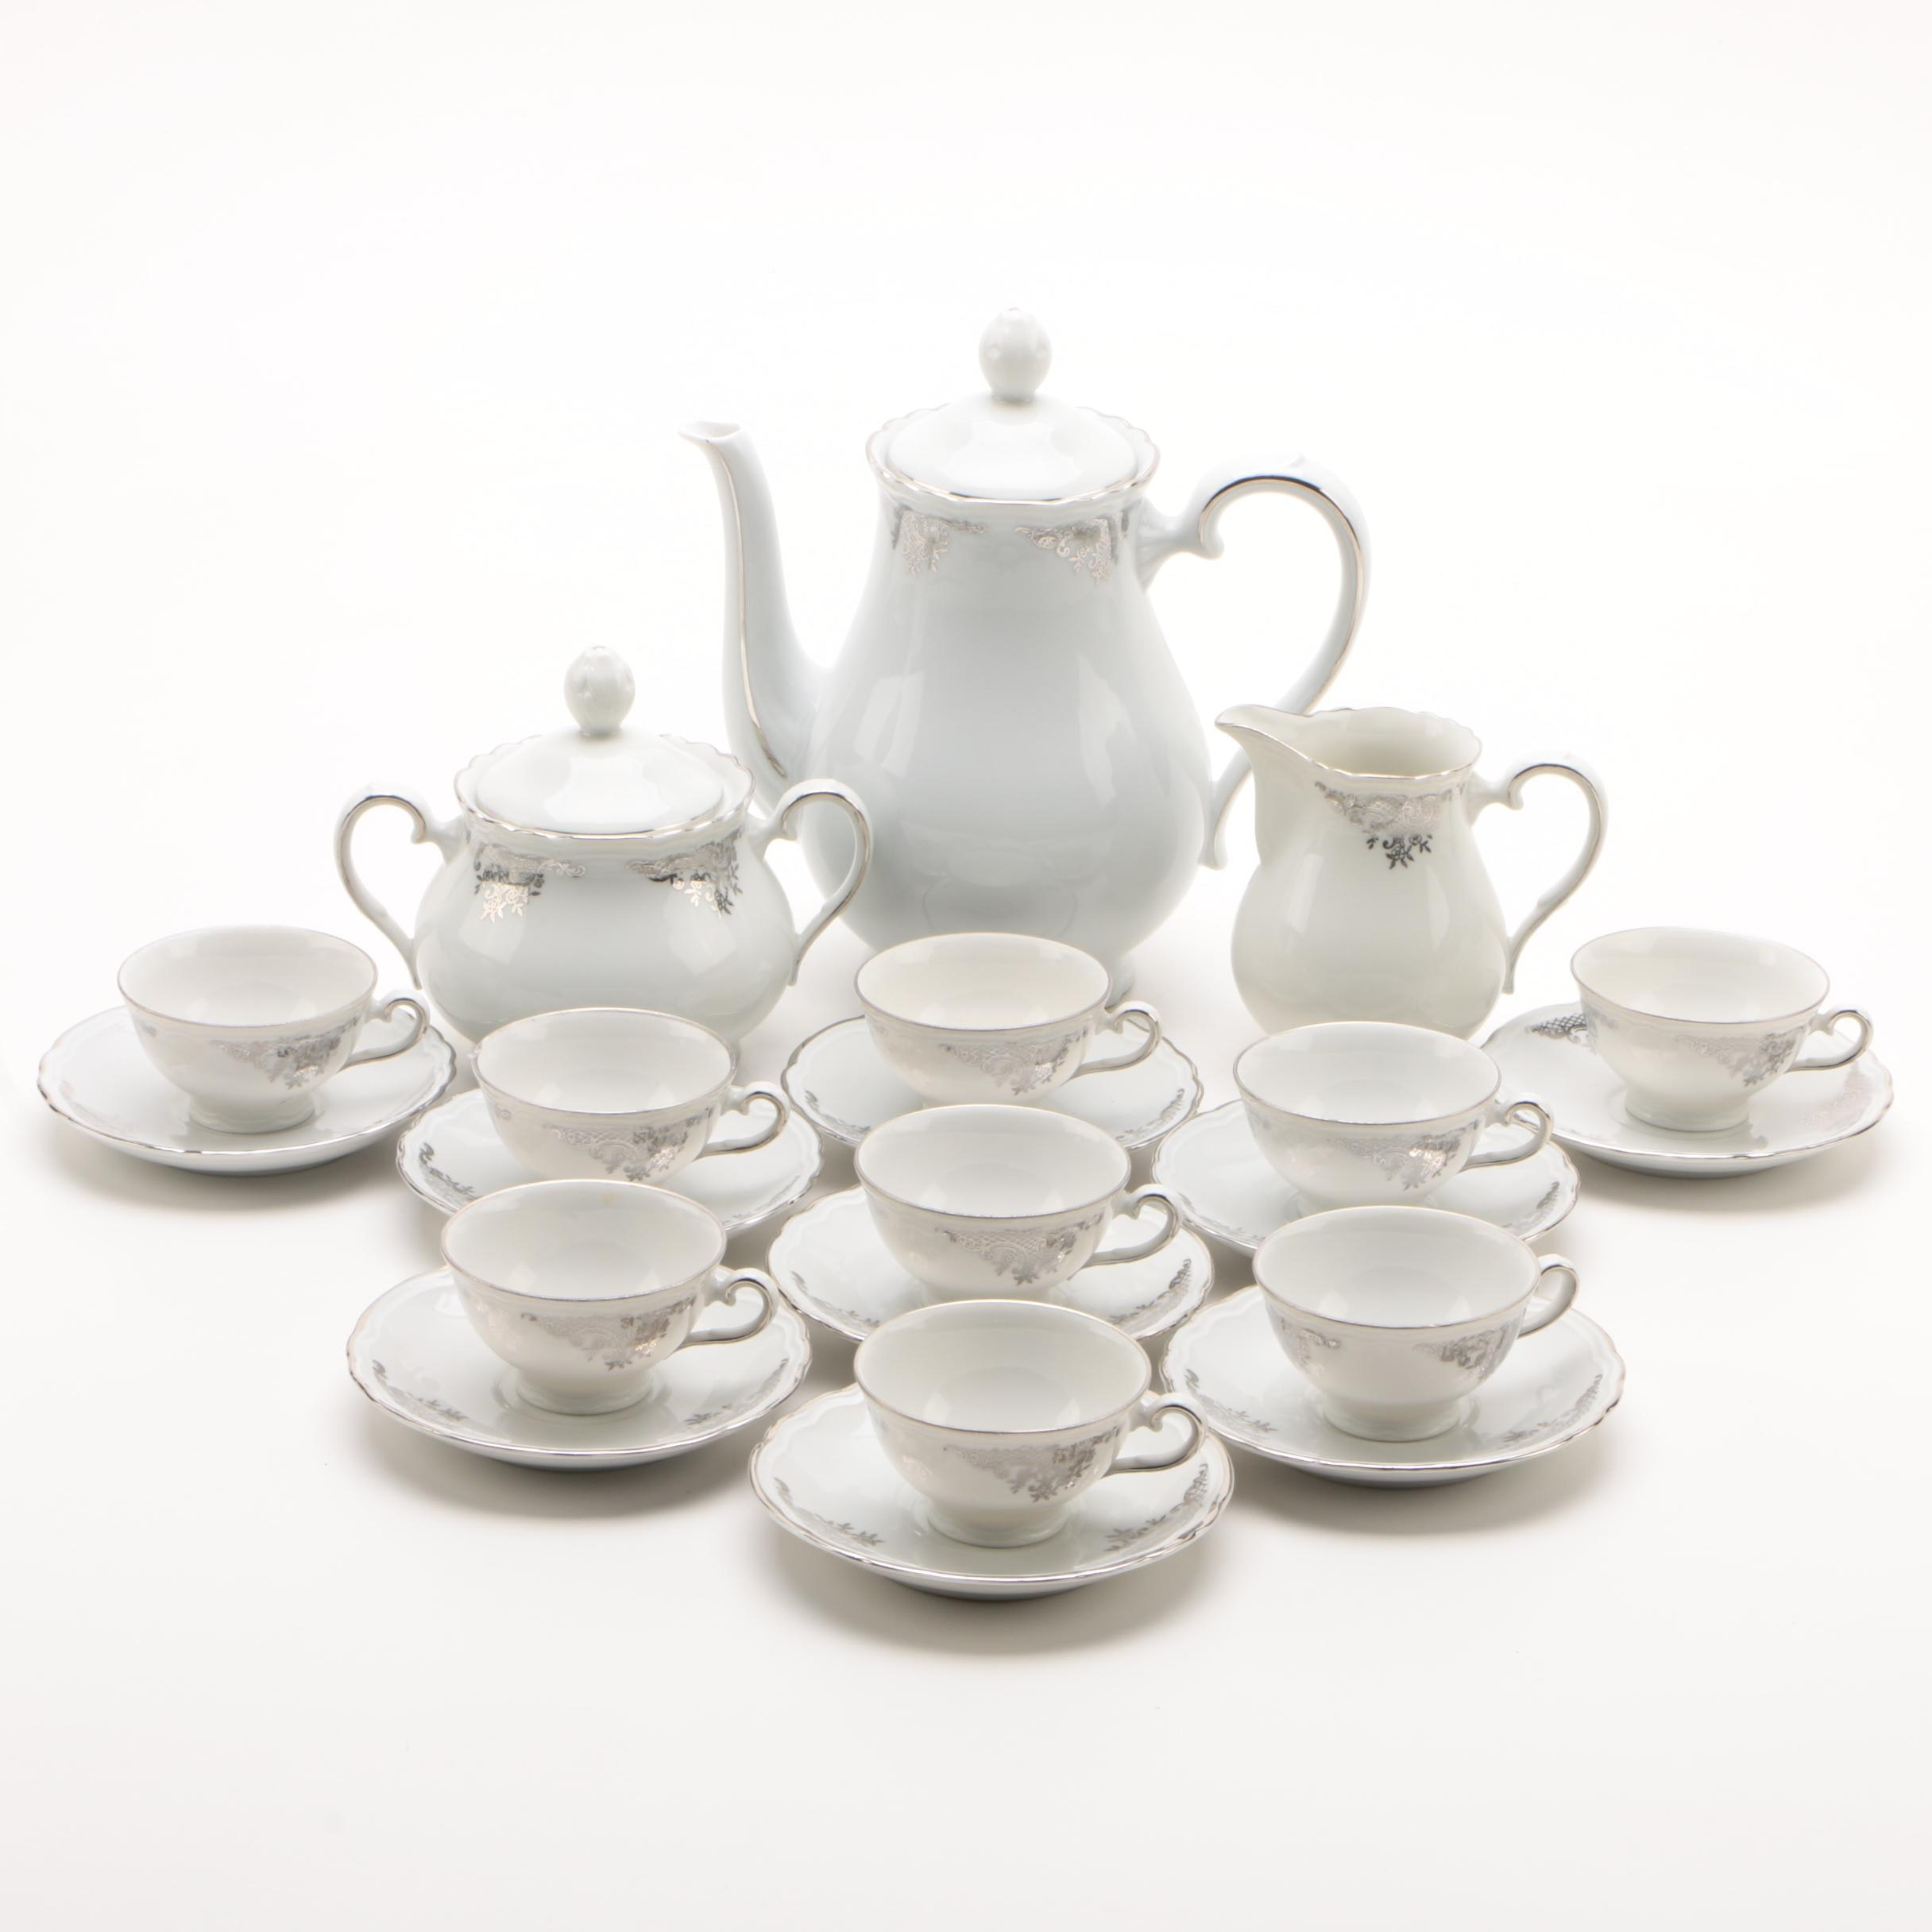 Richard Ginori Porcelain Coffee Service